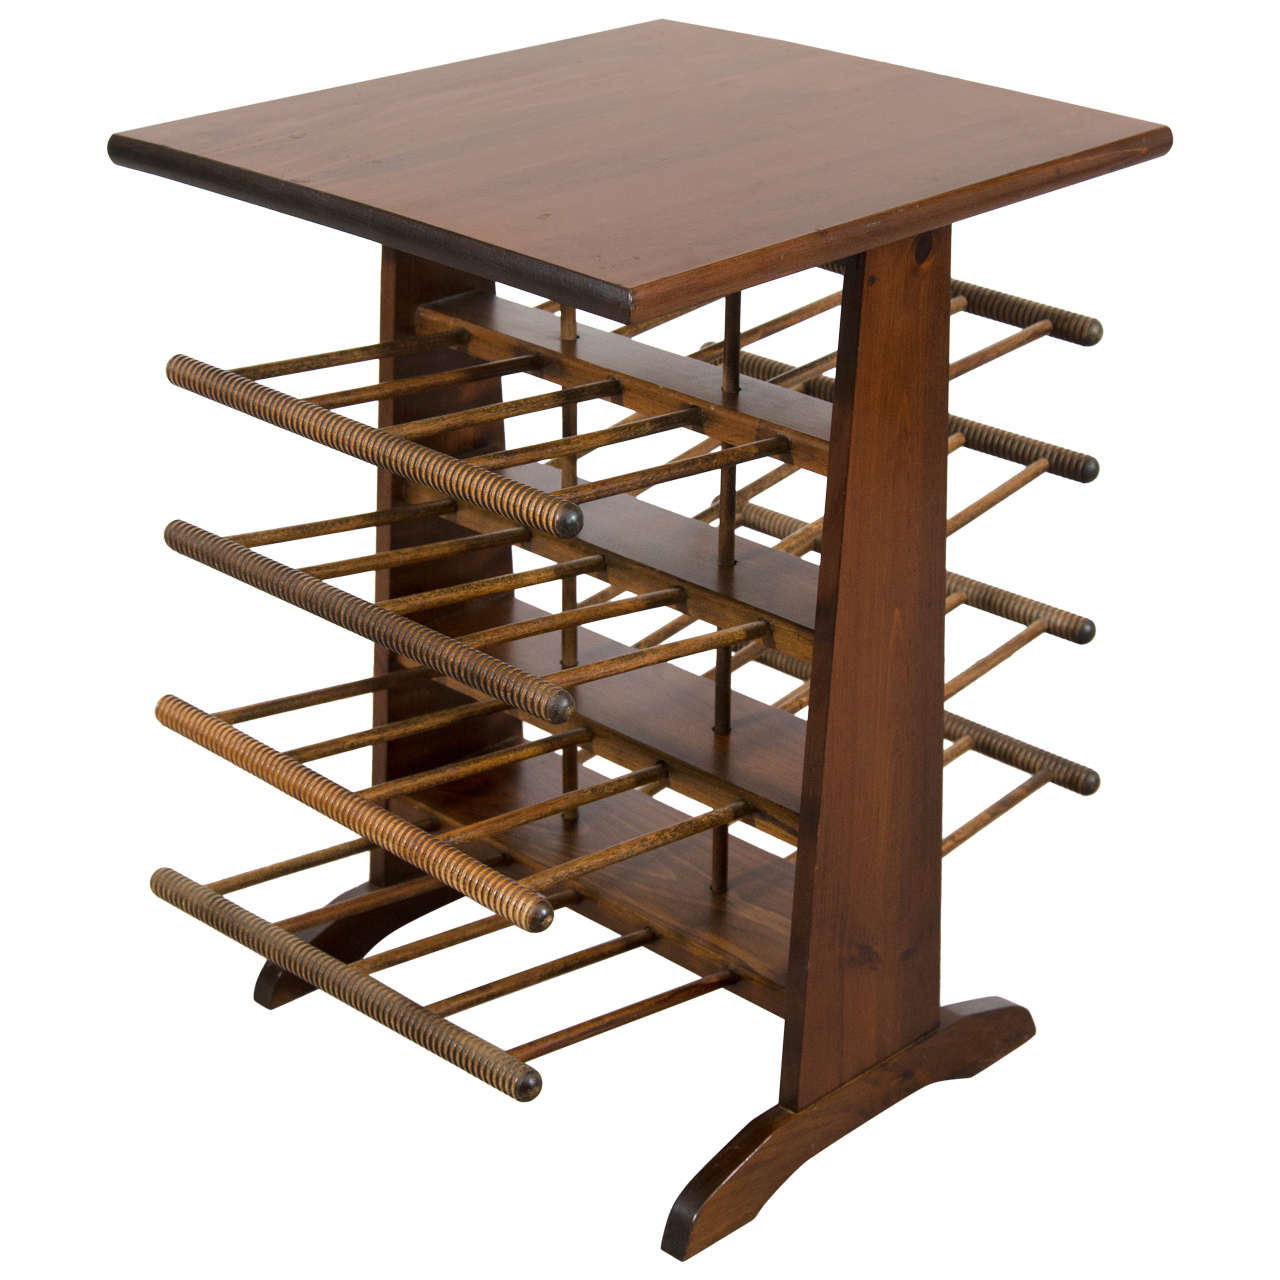 Midcentury Wooden Magazine Rack Or Stand With Eight Shelves For Sale